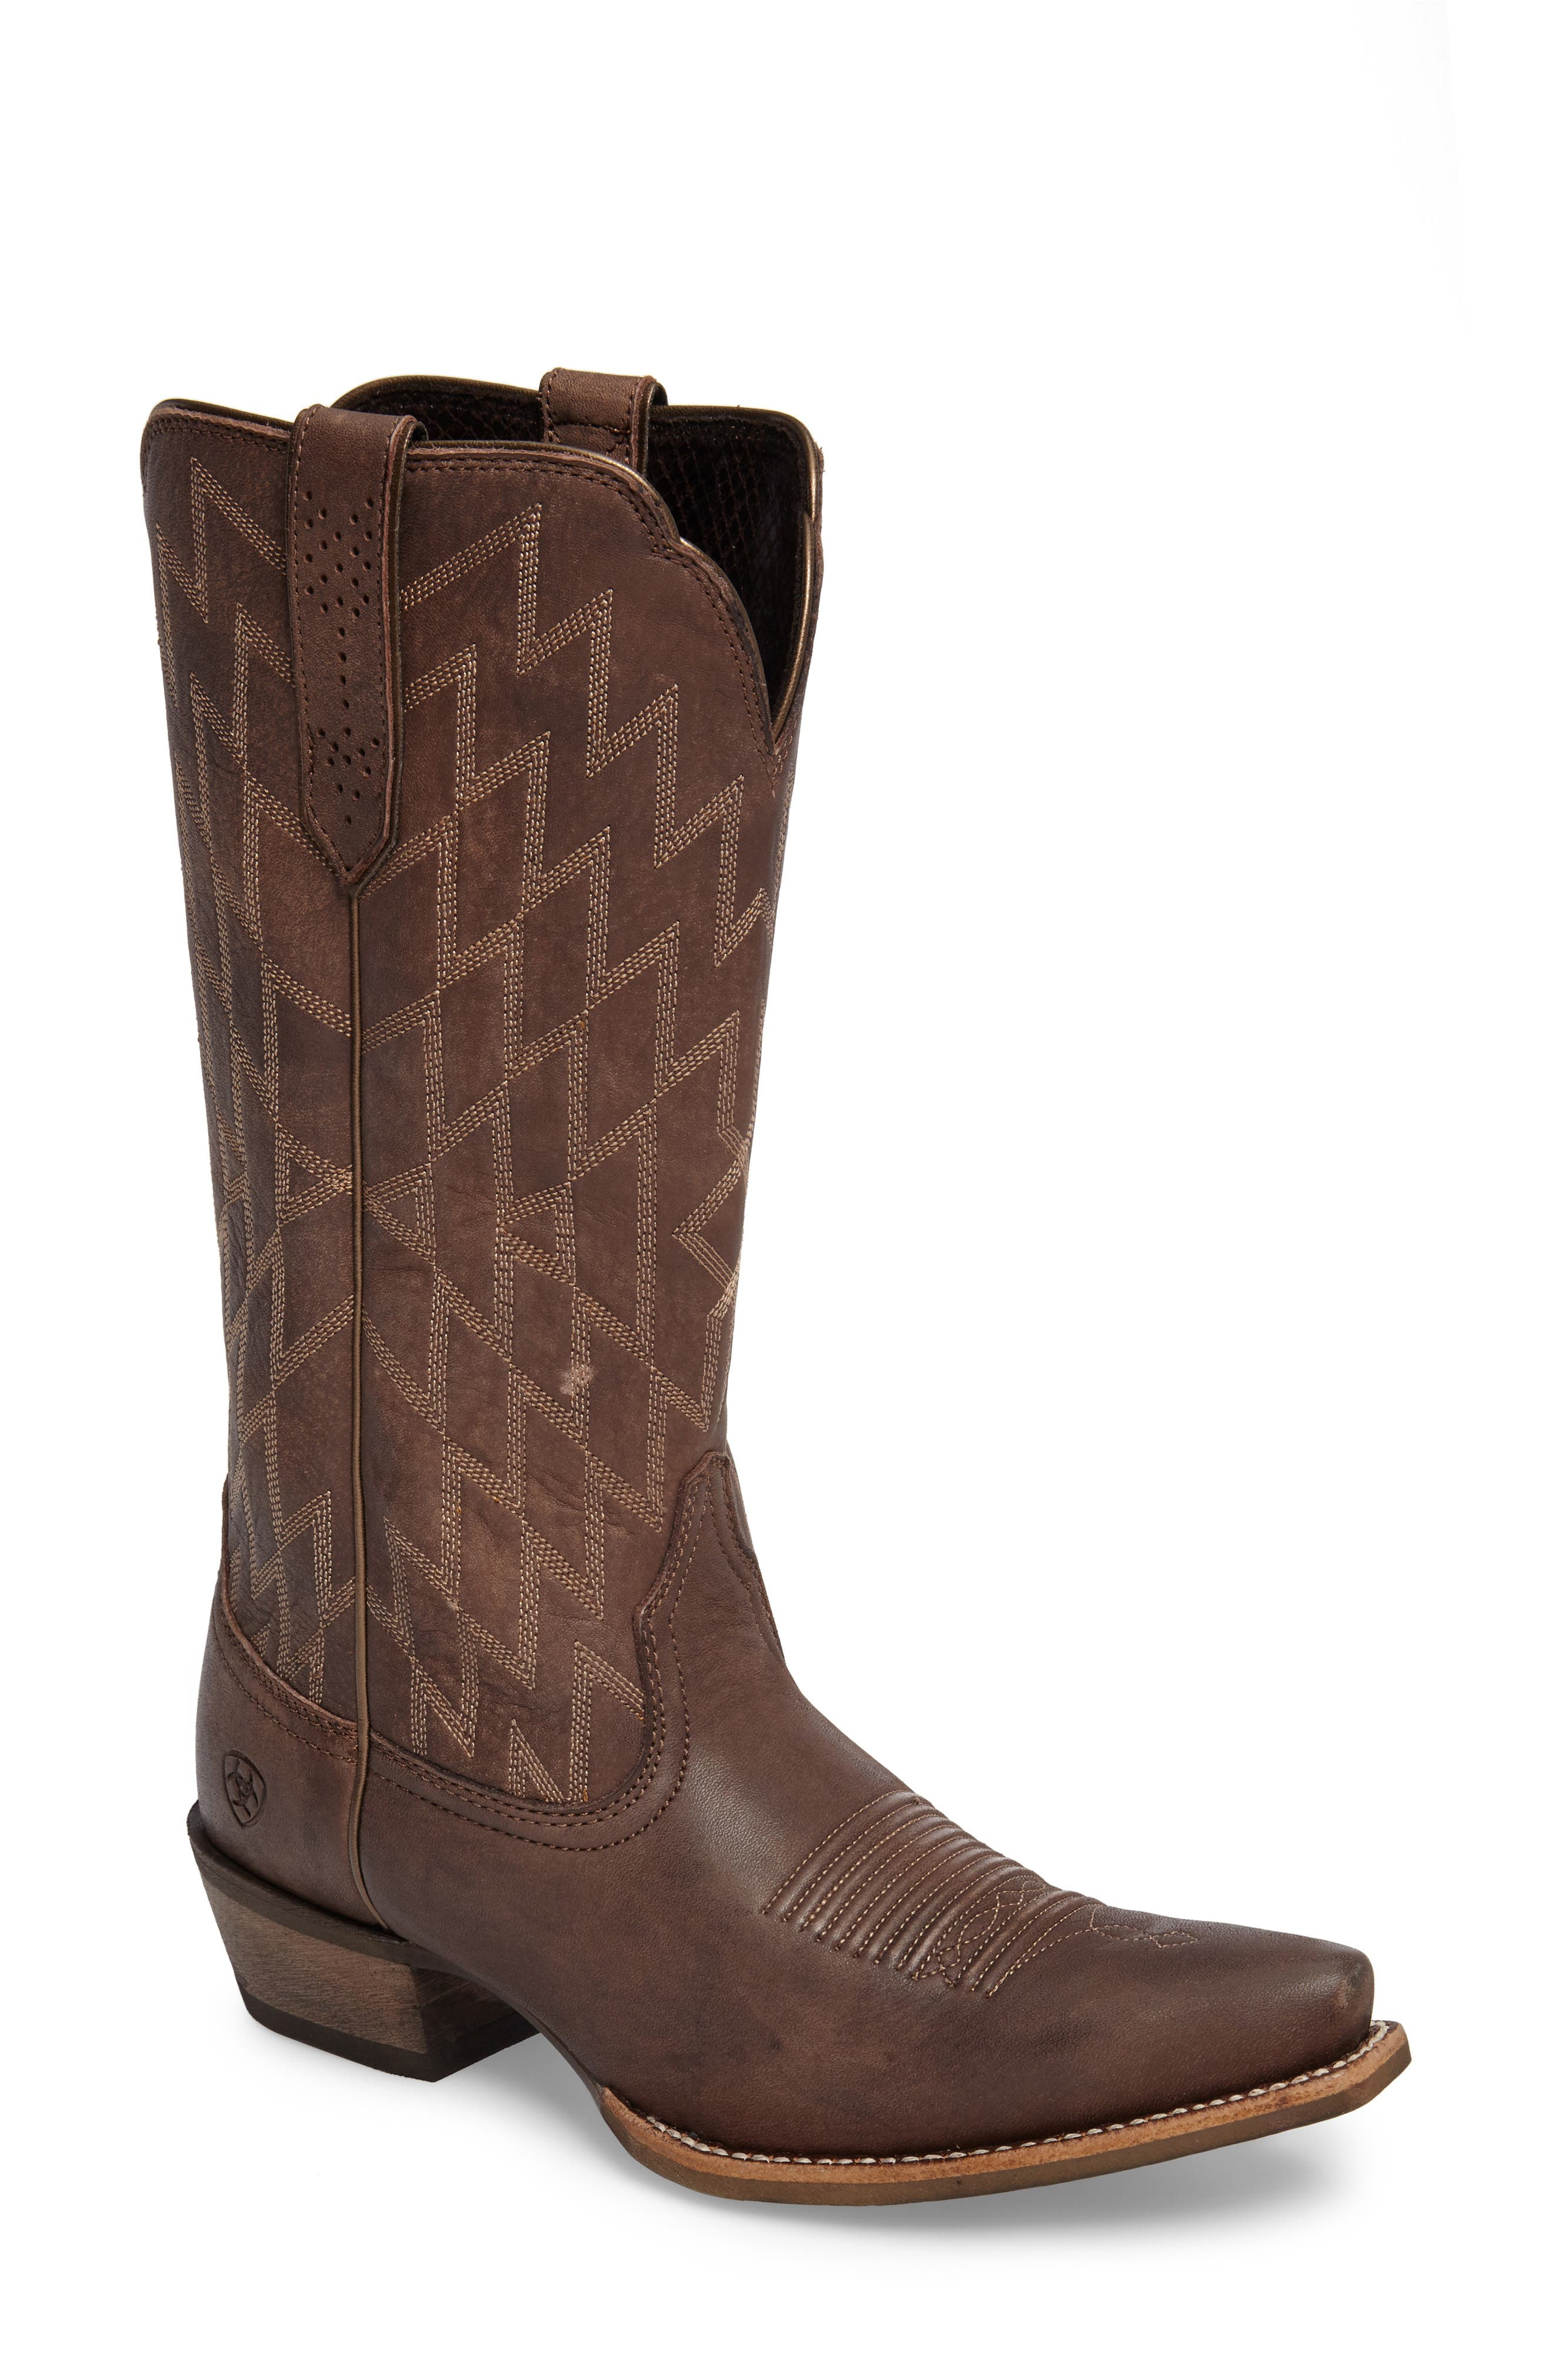 Heritage Southwestern X-Toe Boot,                         Main,                         color, Tack Room Chocolate Leather